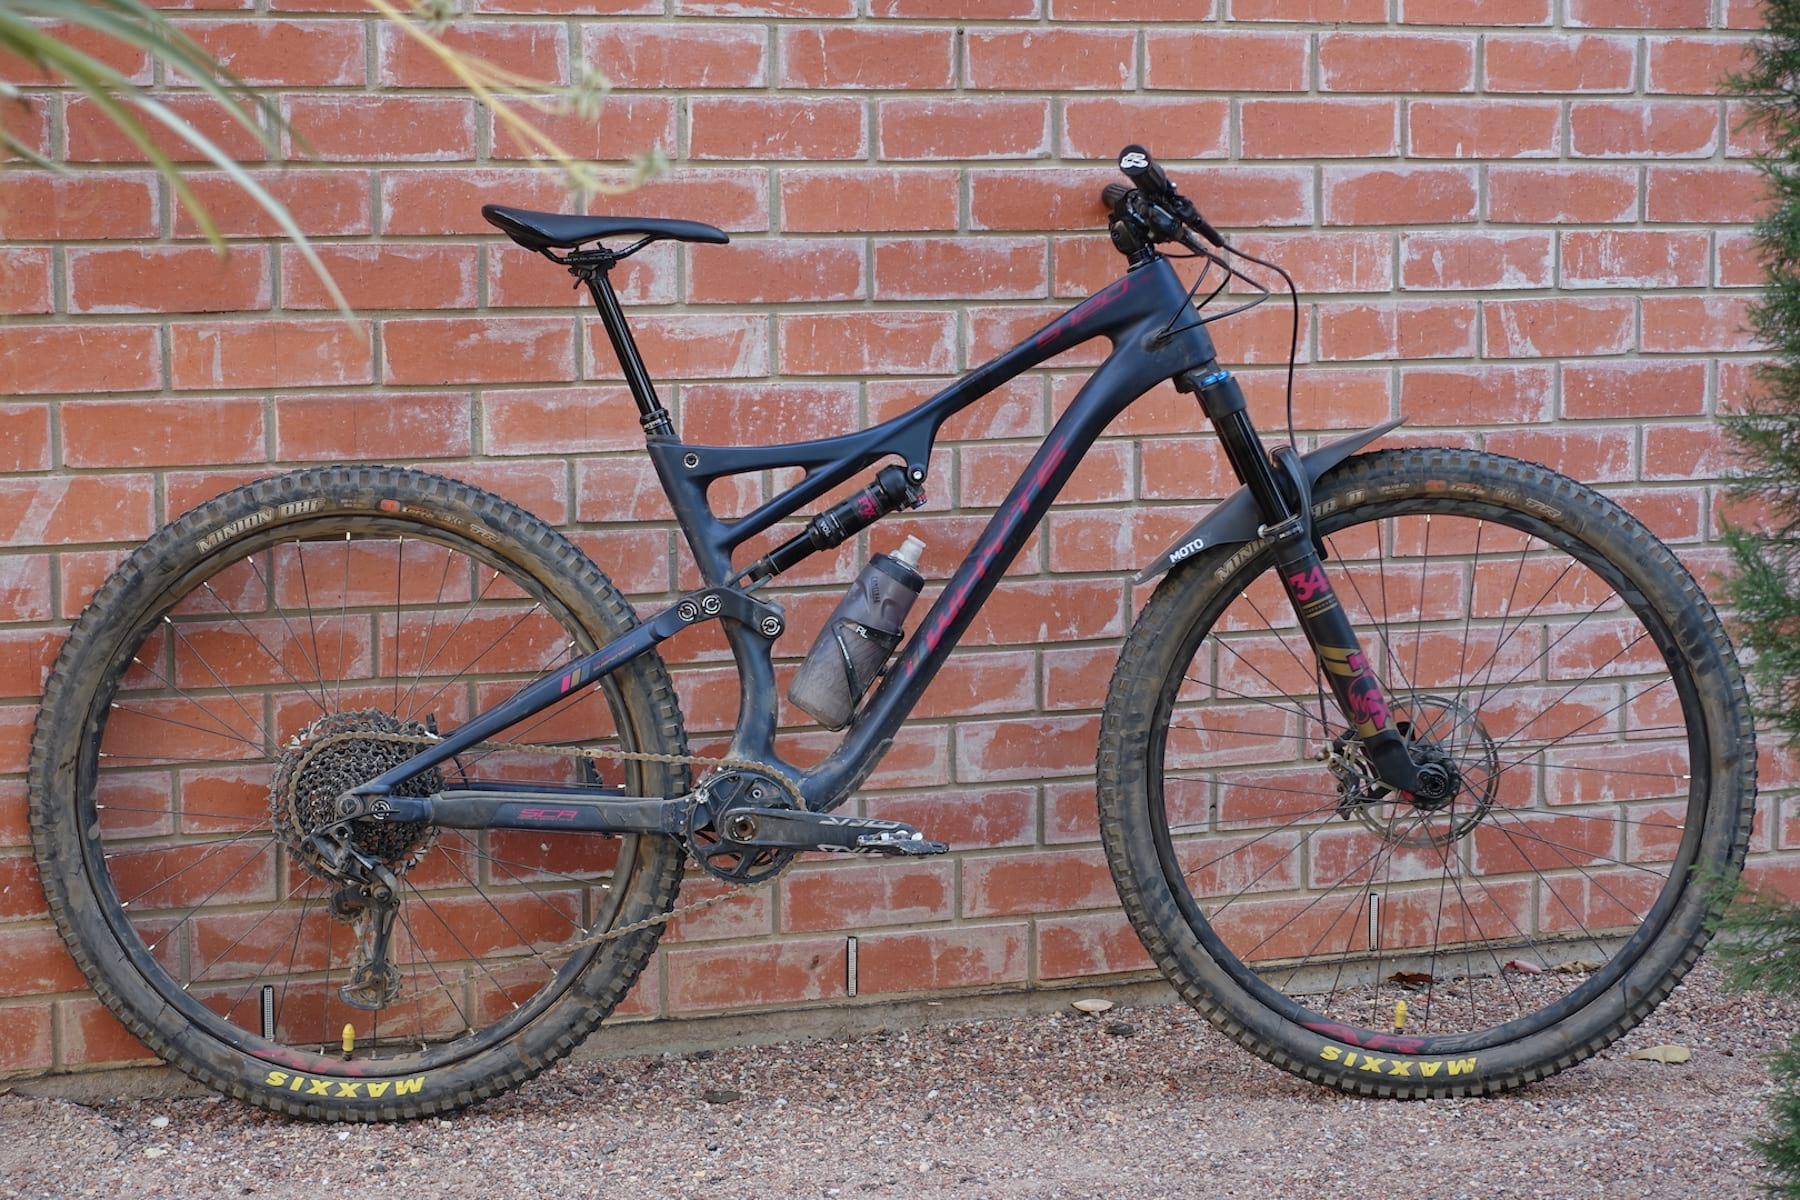 83bcbe55d67 On Board | Testing The Raucous 2019 Whyte S-120 C RS - Singletrack ...